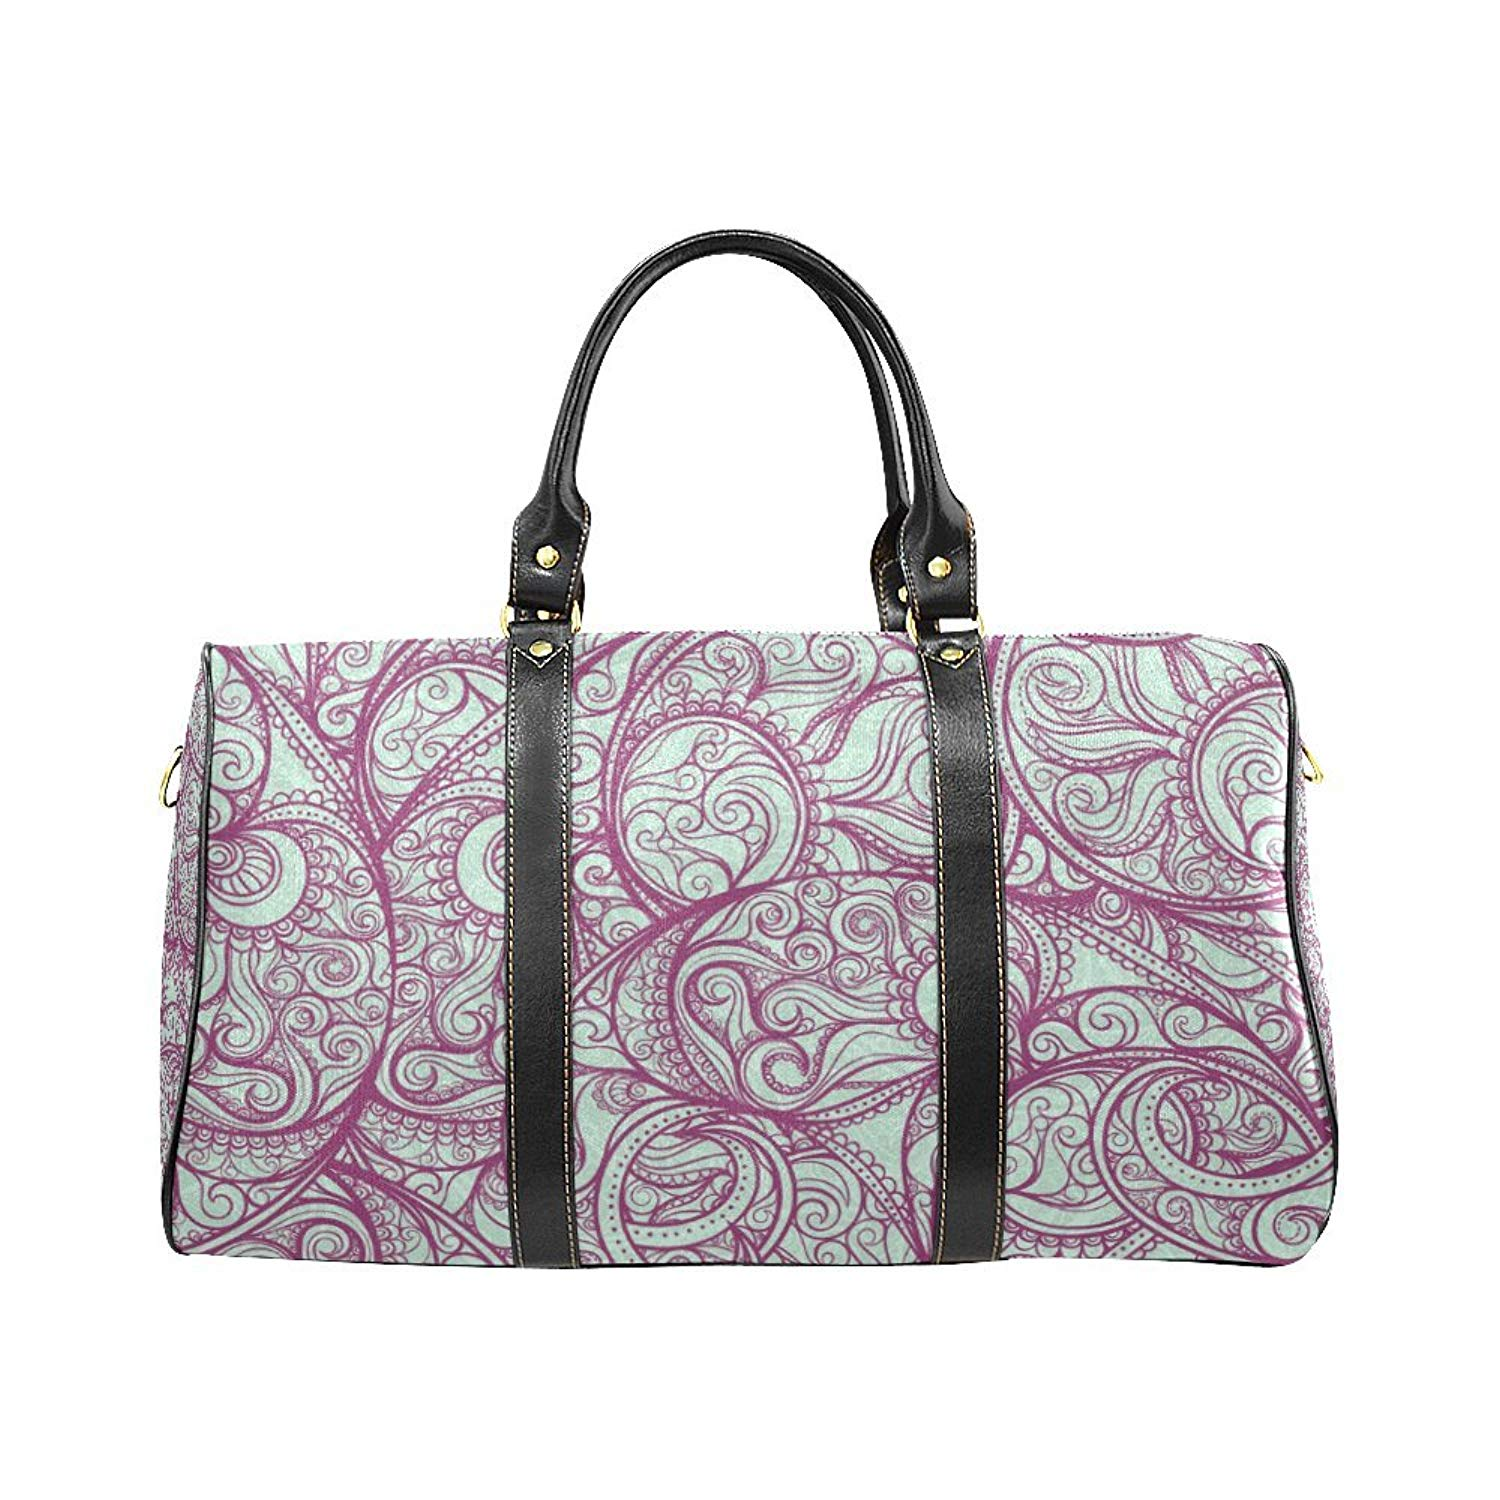 b836145786 Get Quotations · Waterproof Travel Duffel Bag Womens Weekend Bag Purple  Pattern Mens Luggage Bag For Gym Sports Overnight